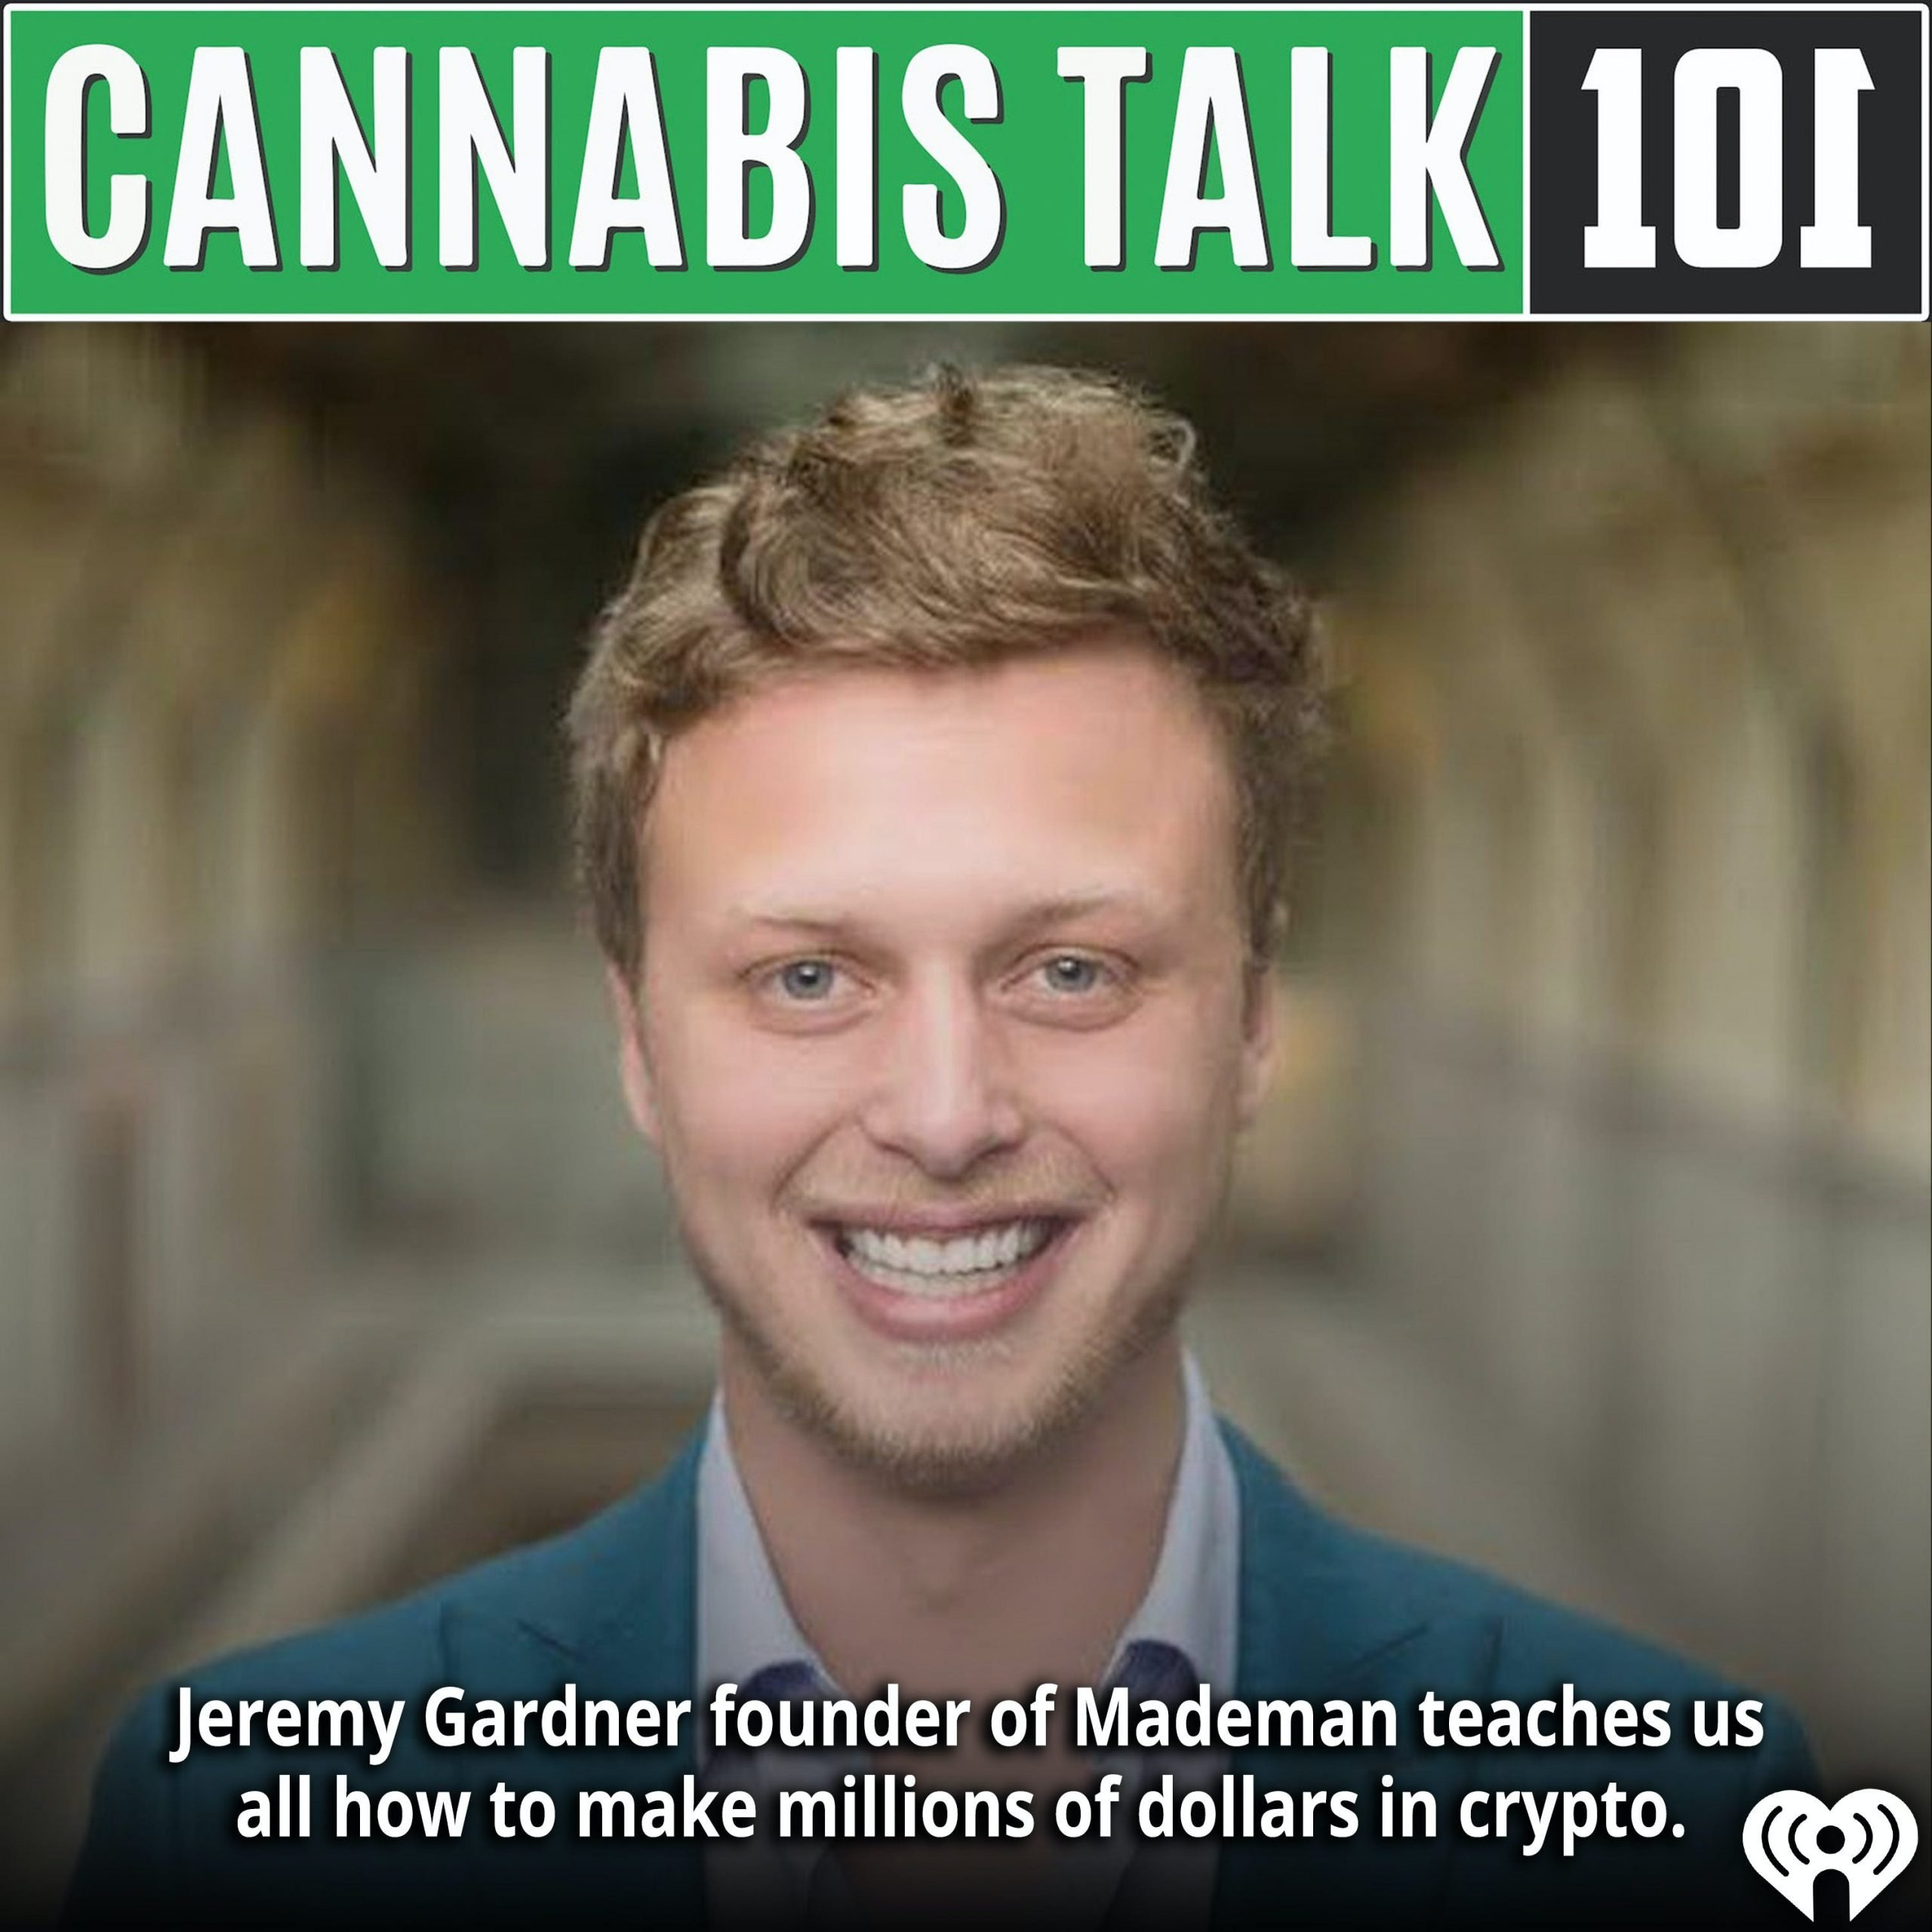 Jeremy Gardner founder of Mademan teaches us all how to ...